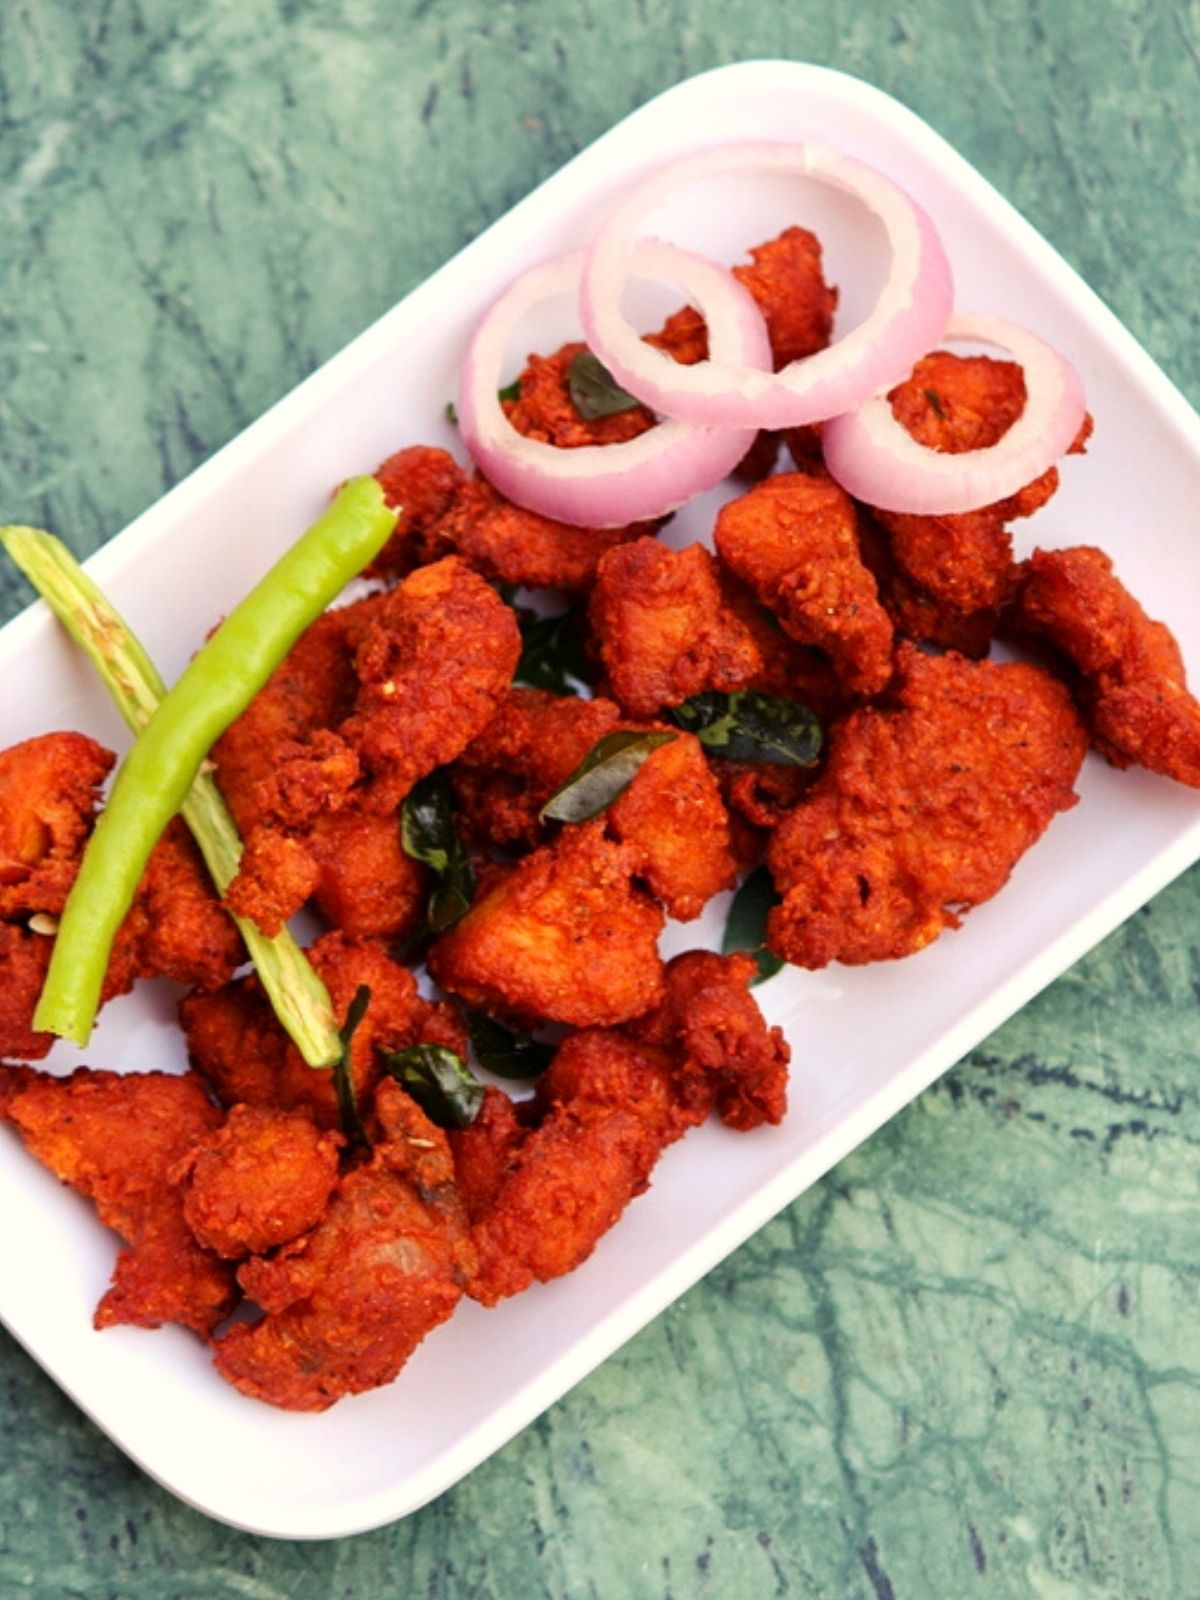 deep fried pakora served on a plate with onions and chilli topping